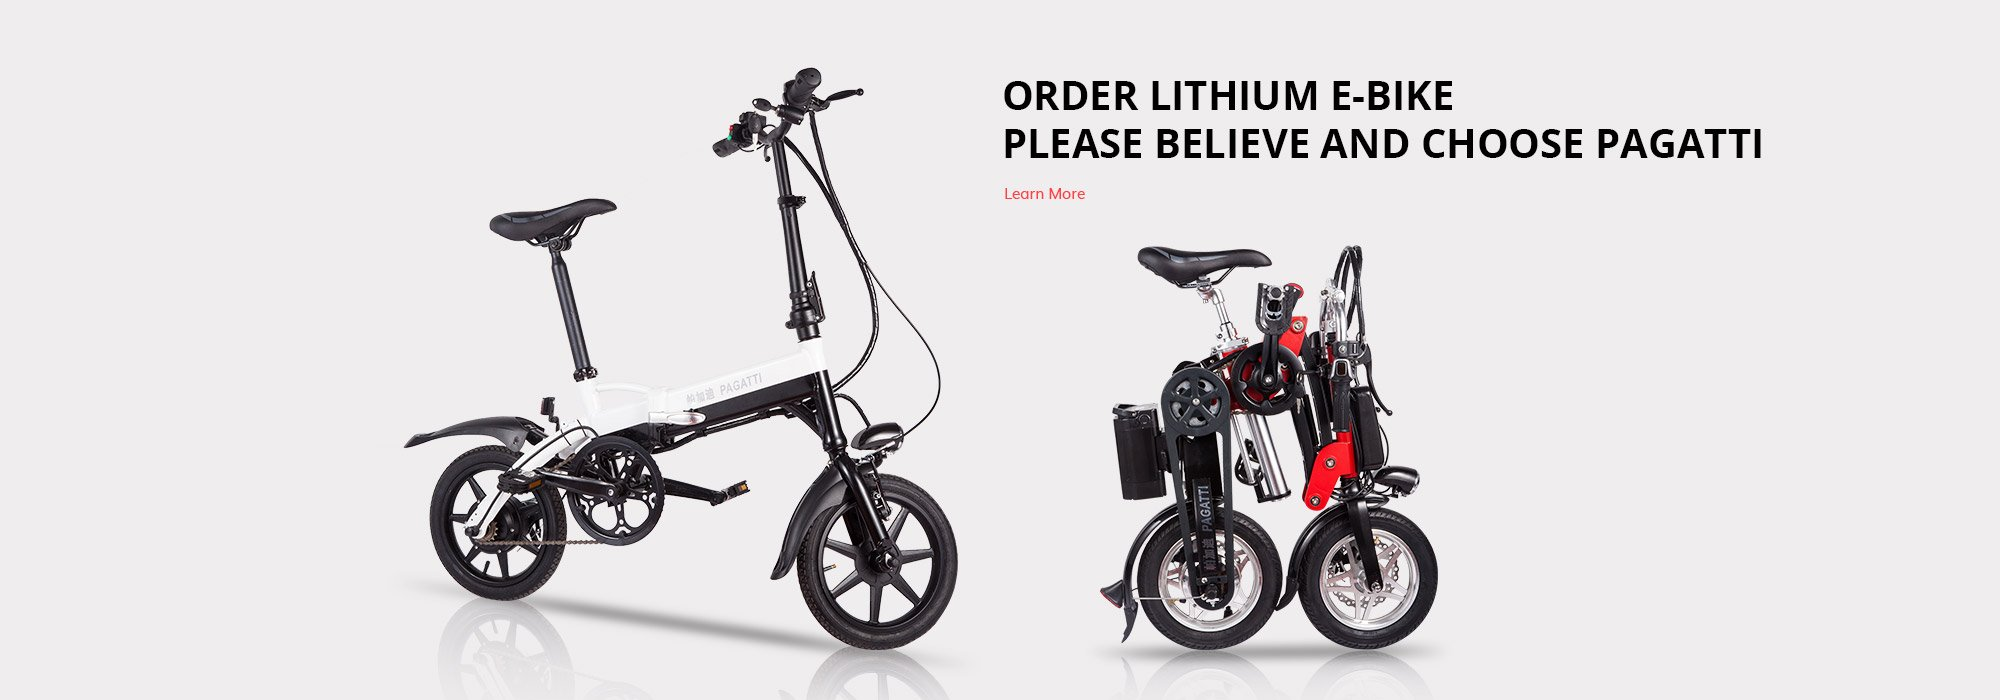 Lithium e-bicycles